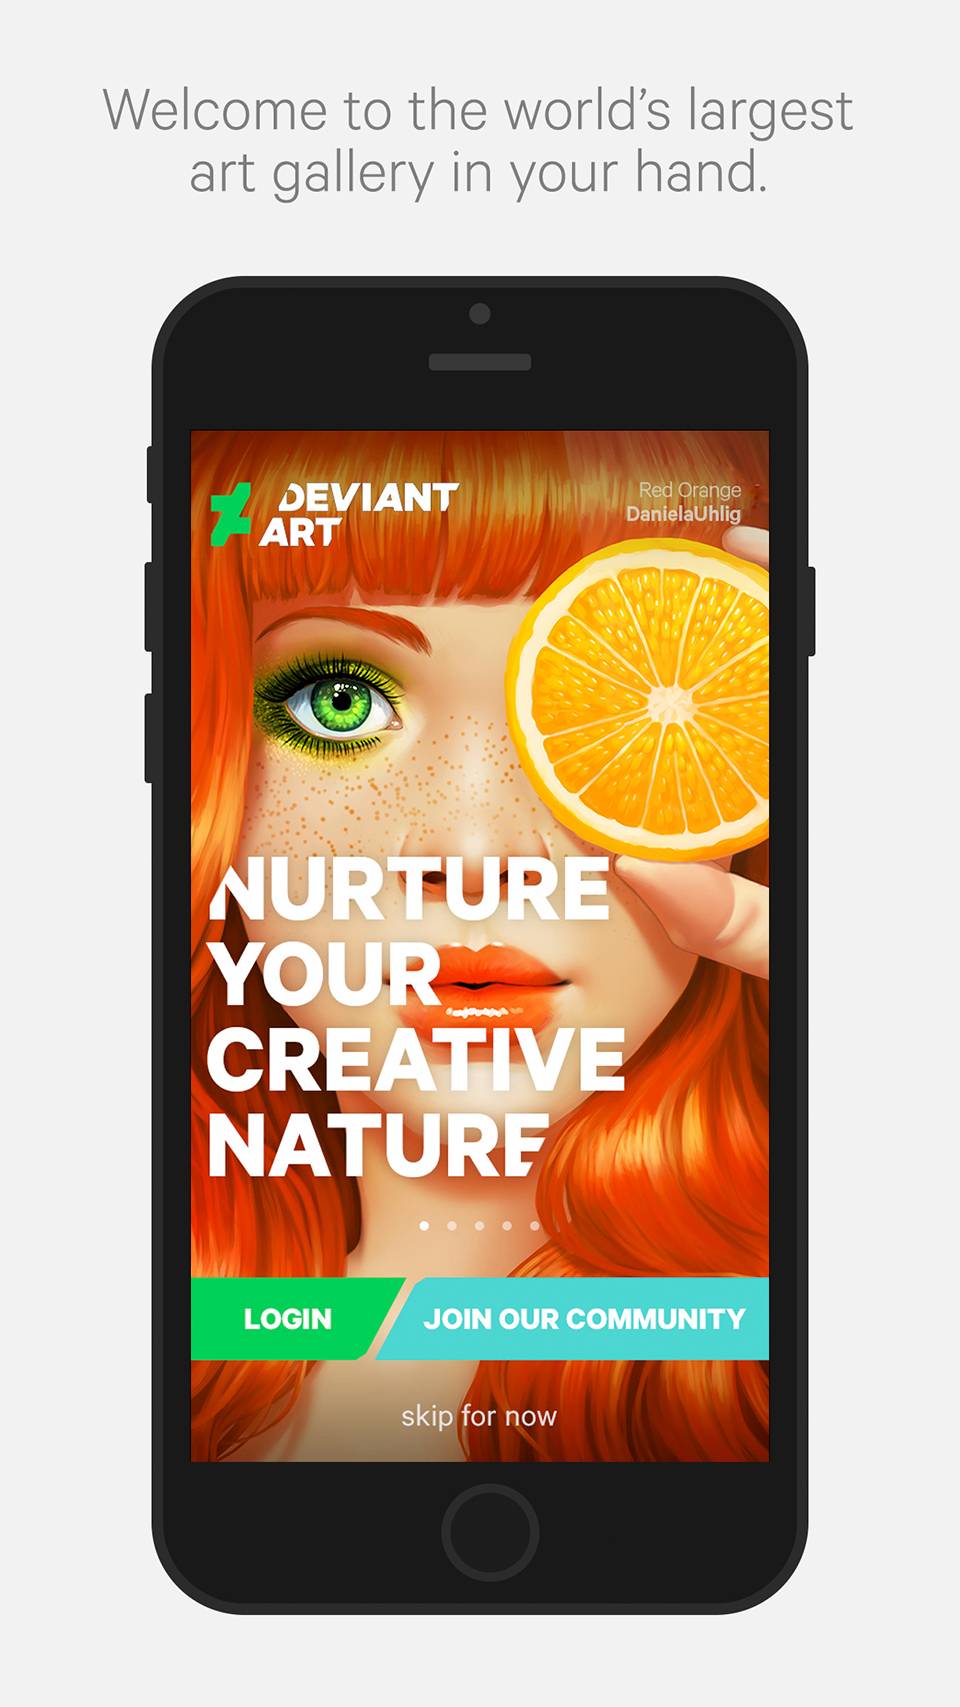 DeviantArt Official Mobile App